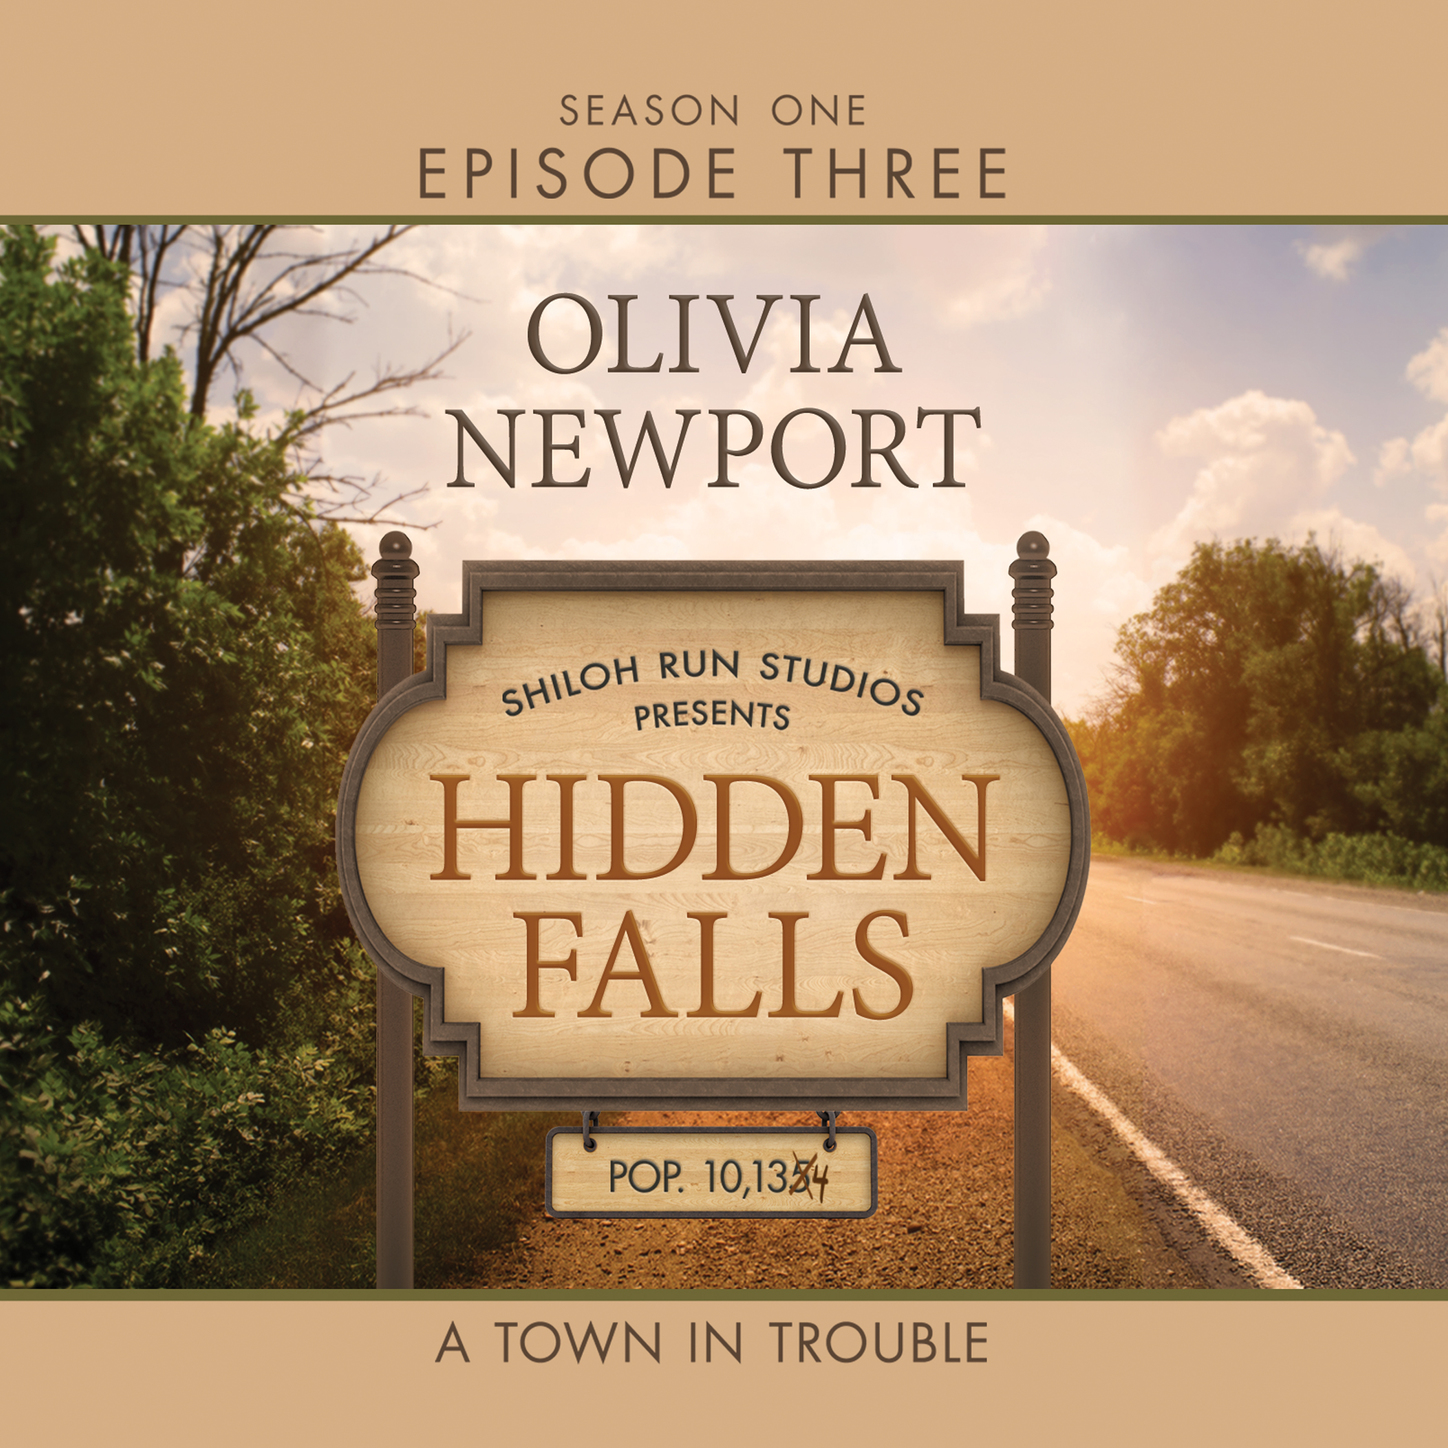 Скачать Hidden Falls, Season 1, Episode 3: A Town in Trouble (Unabridged) - Olivia Newport